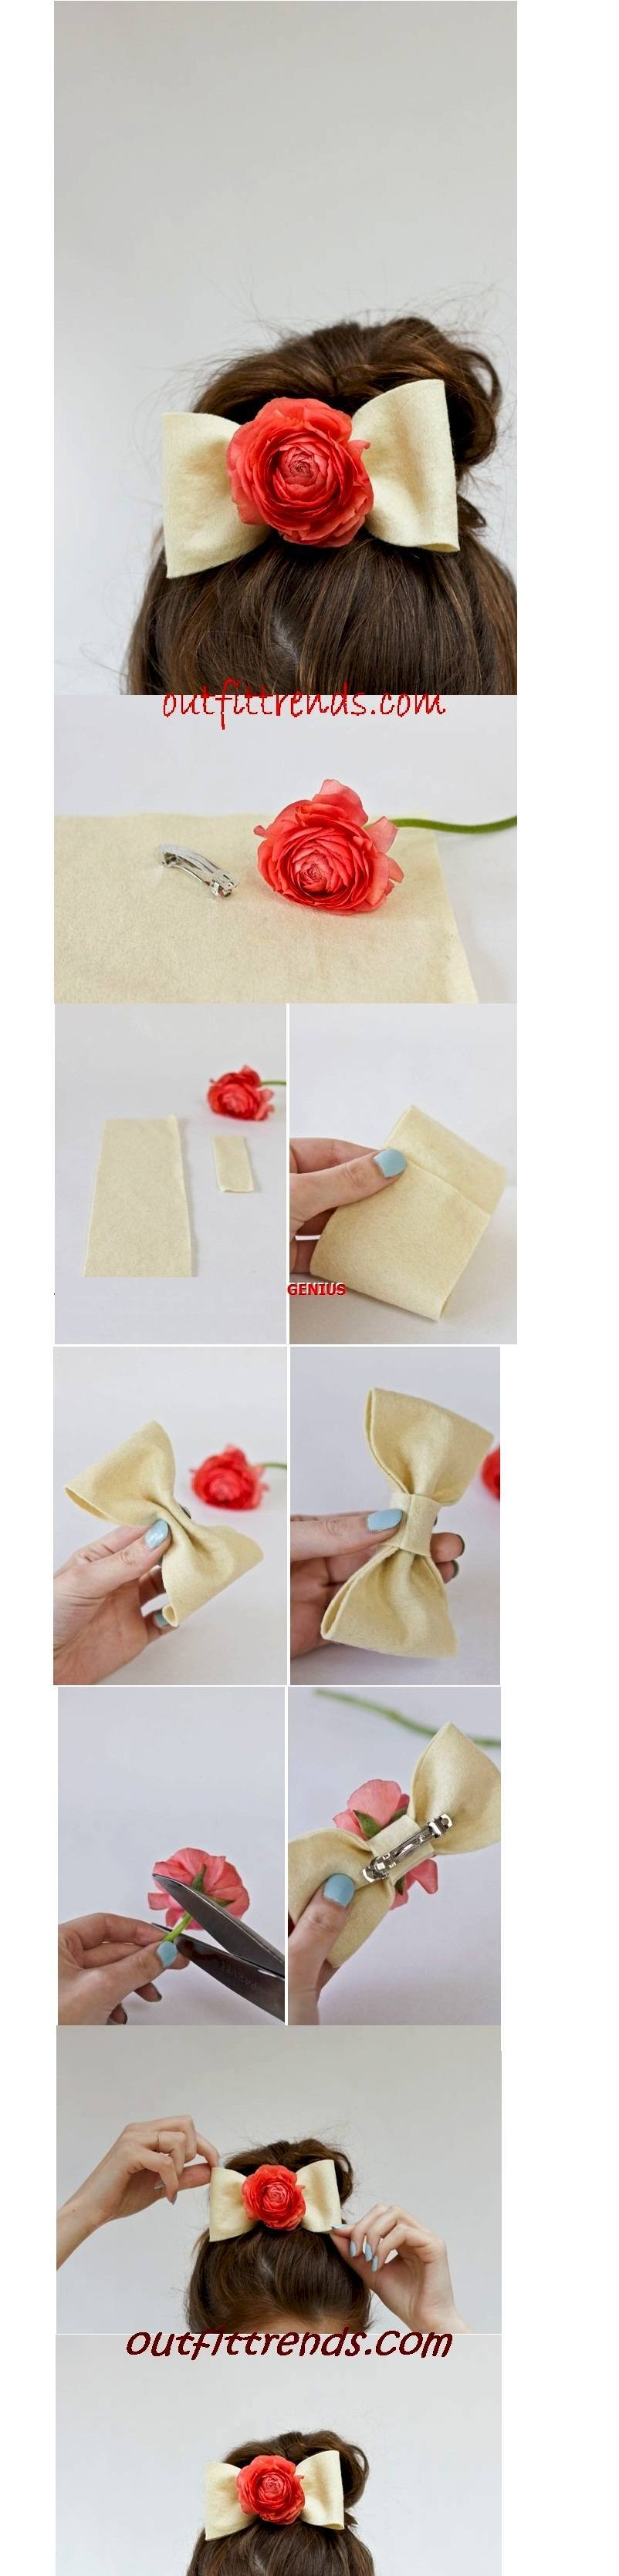 Diy Hair Bows with Flowers